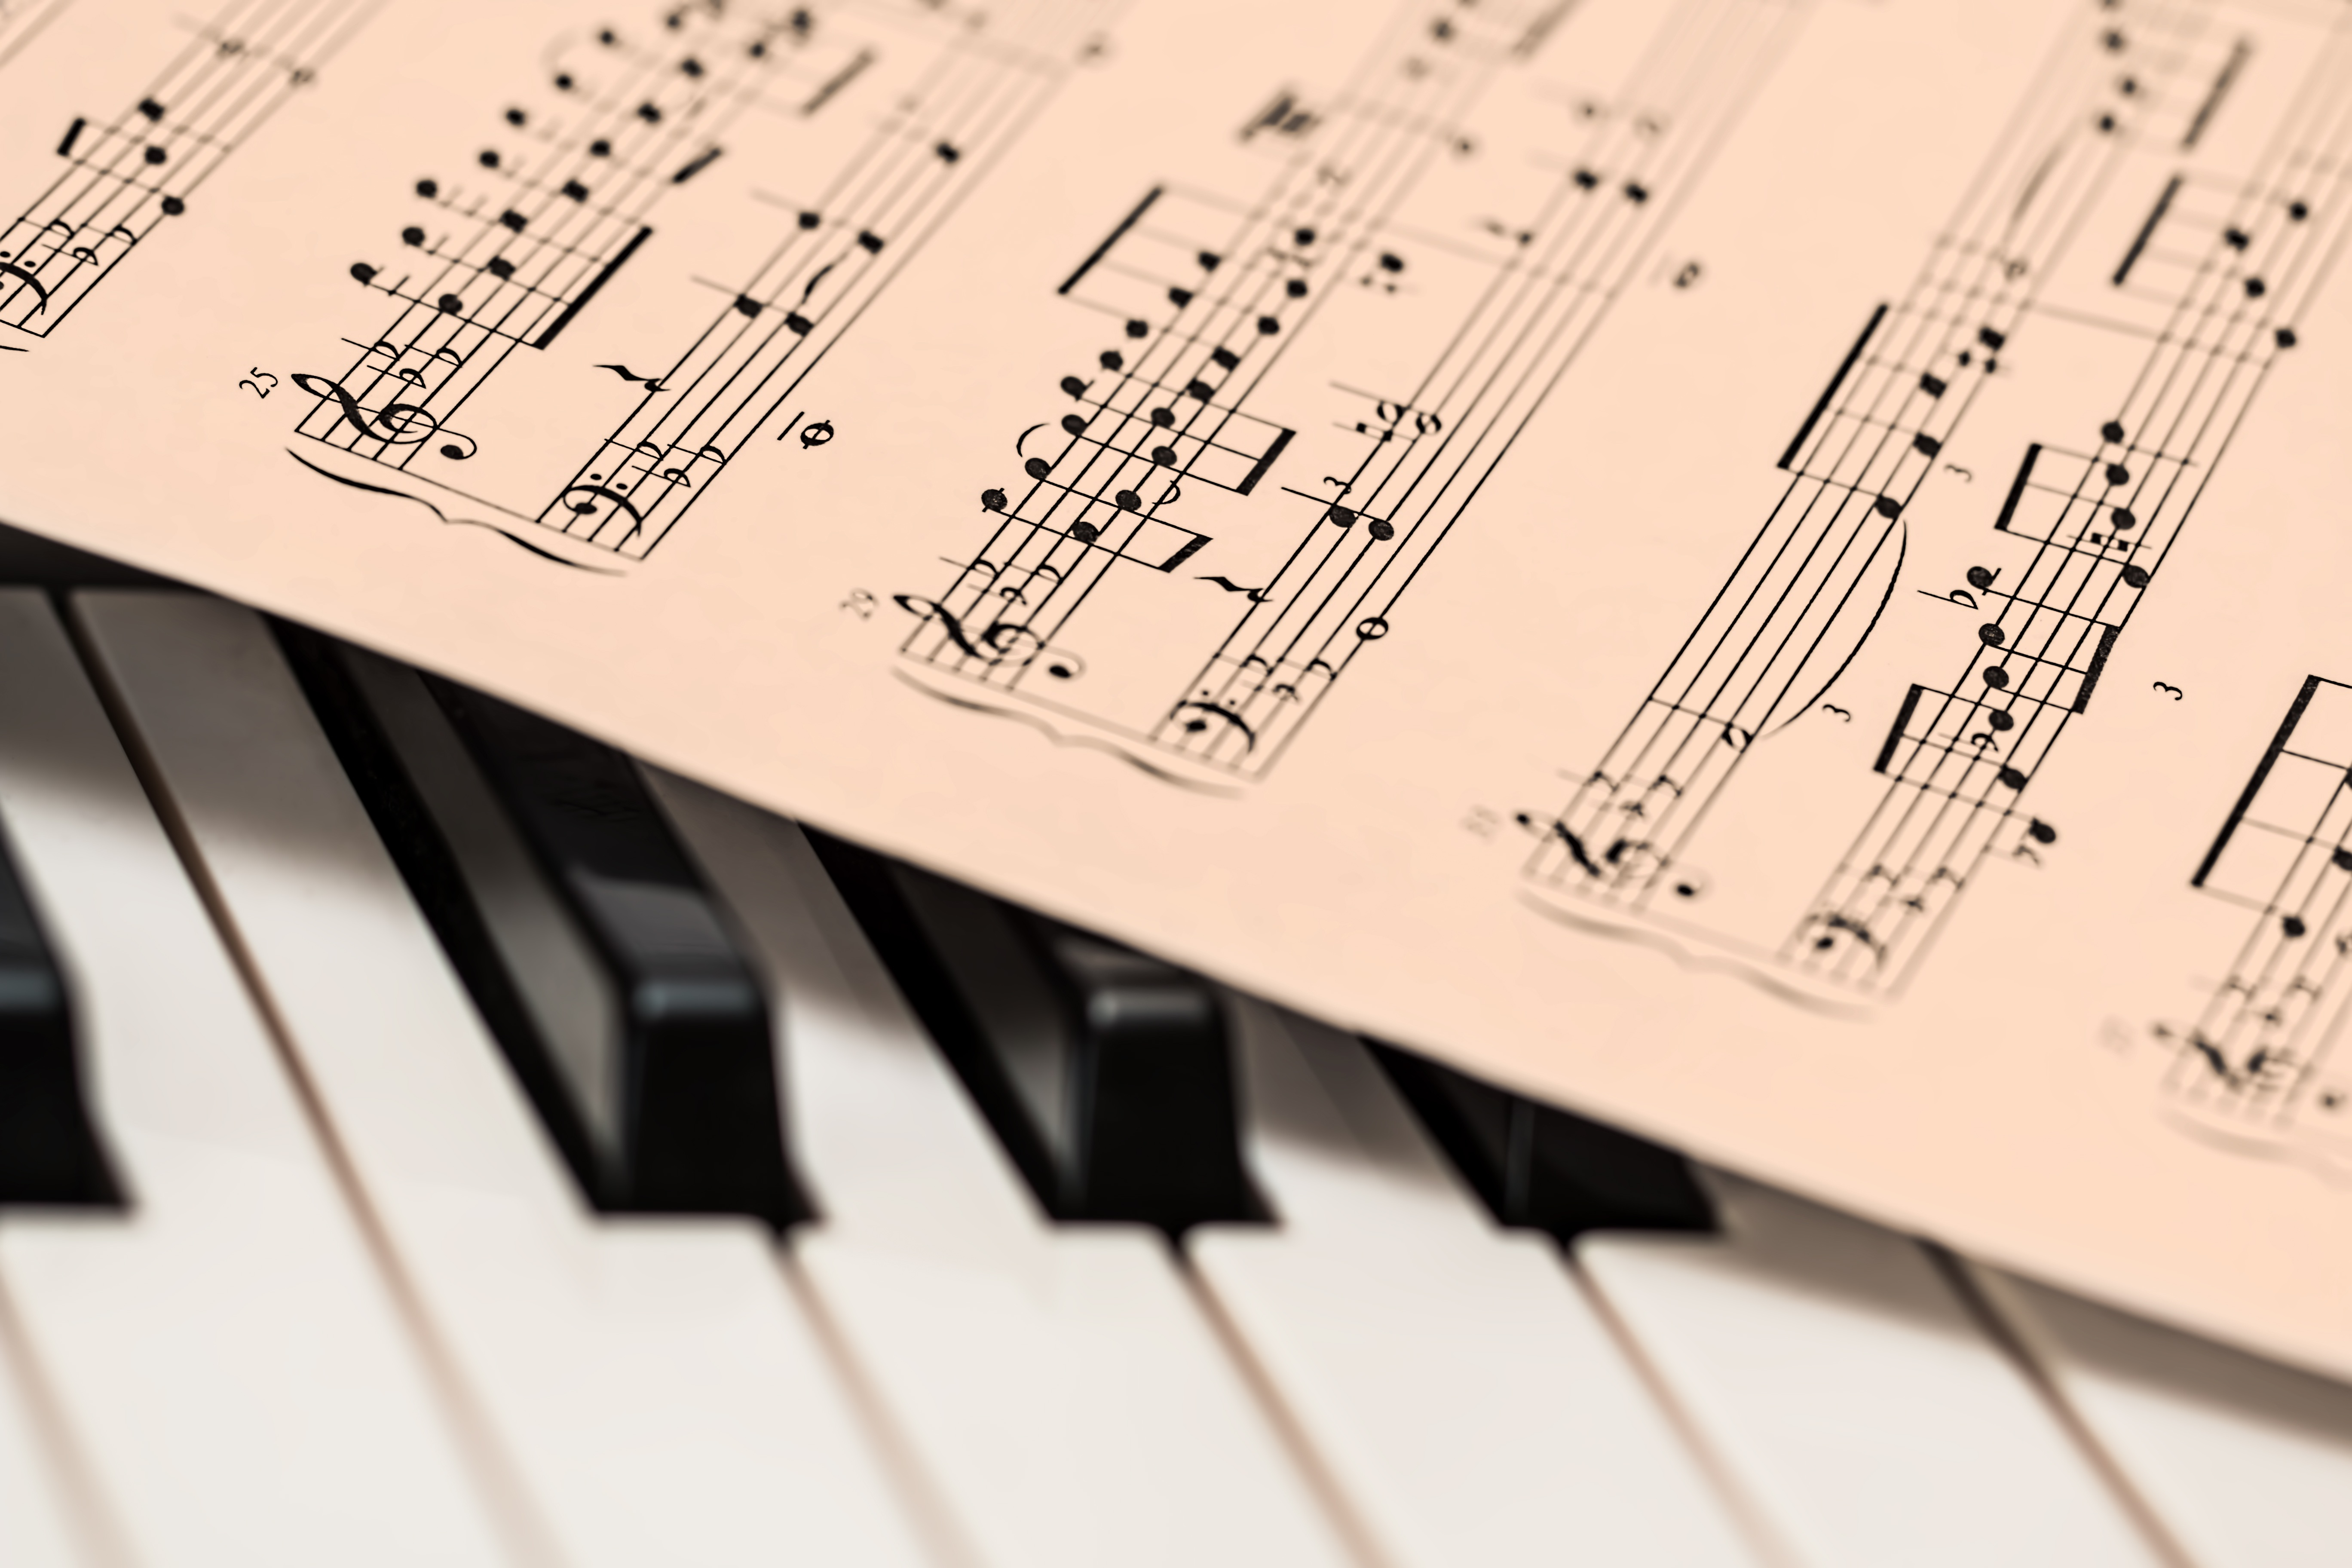 Main visual : What can music composition tell us about business optimization?